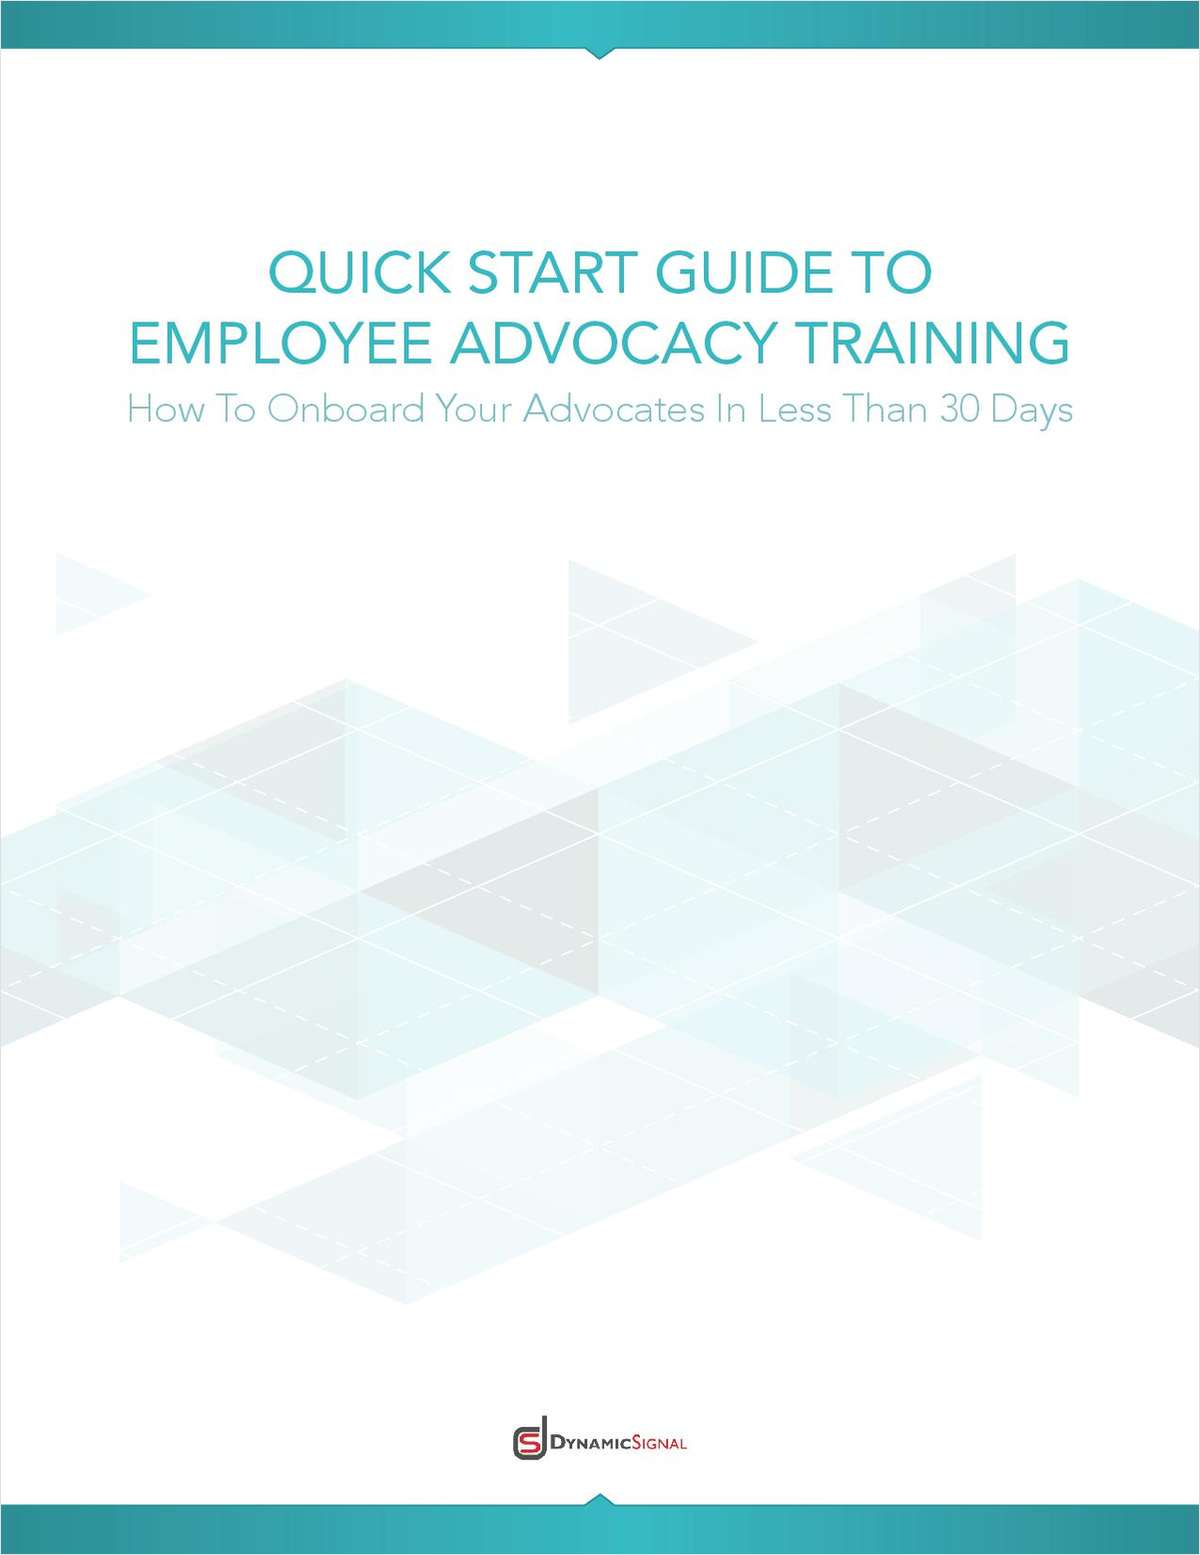 Quick Start Guide To Employee Advocacy Training